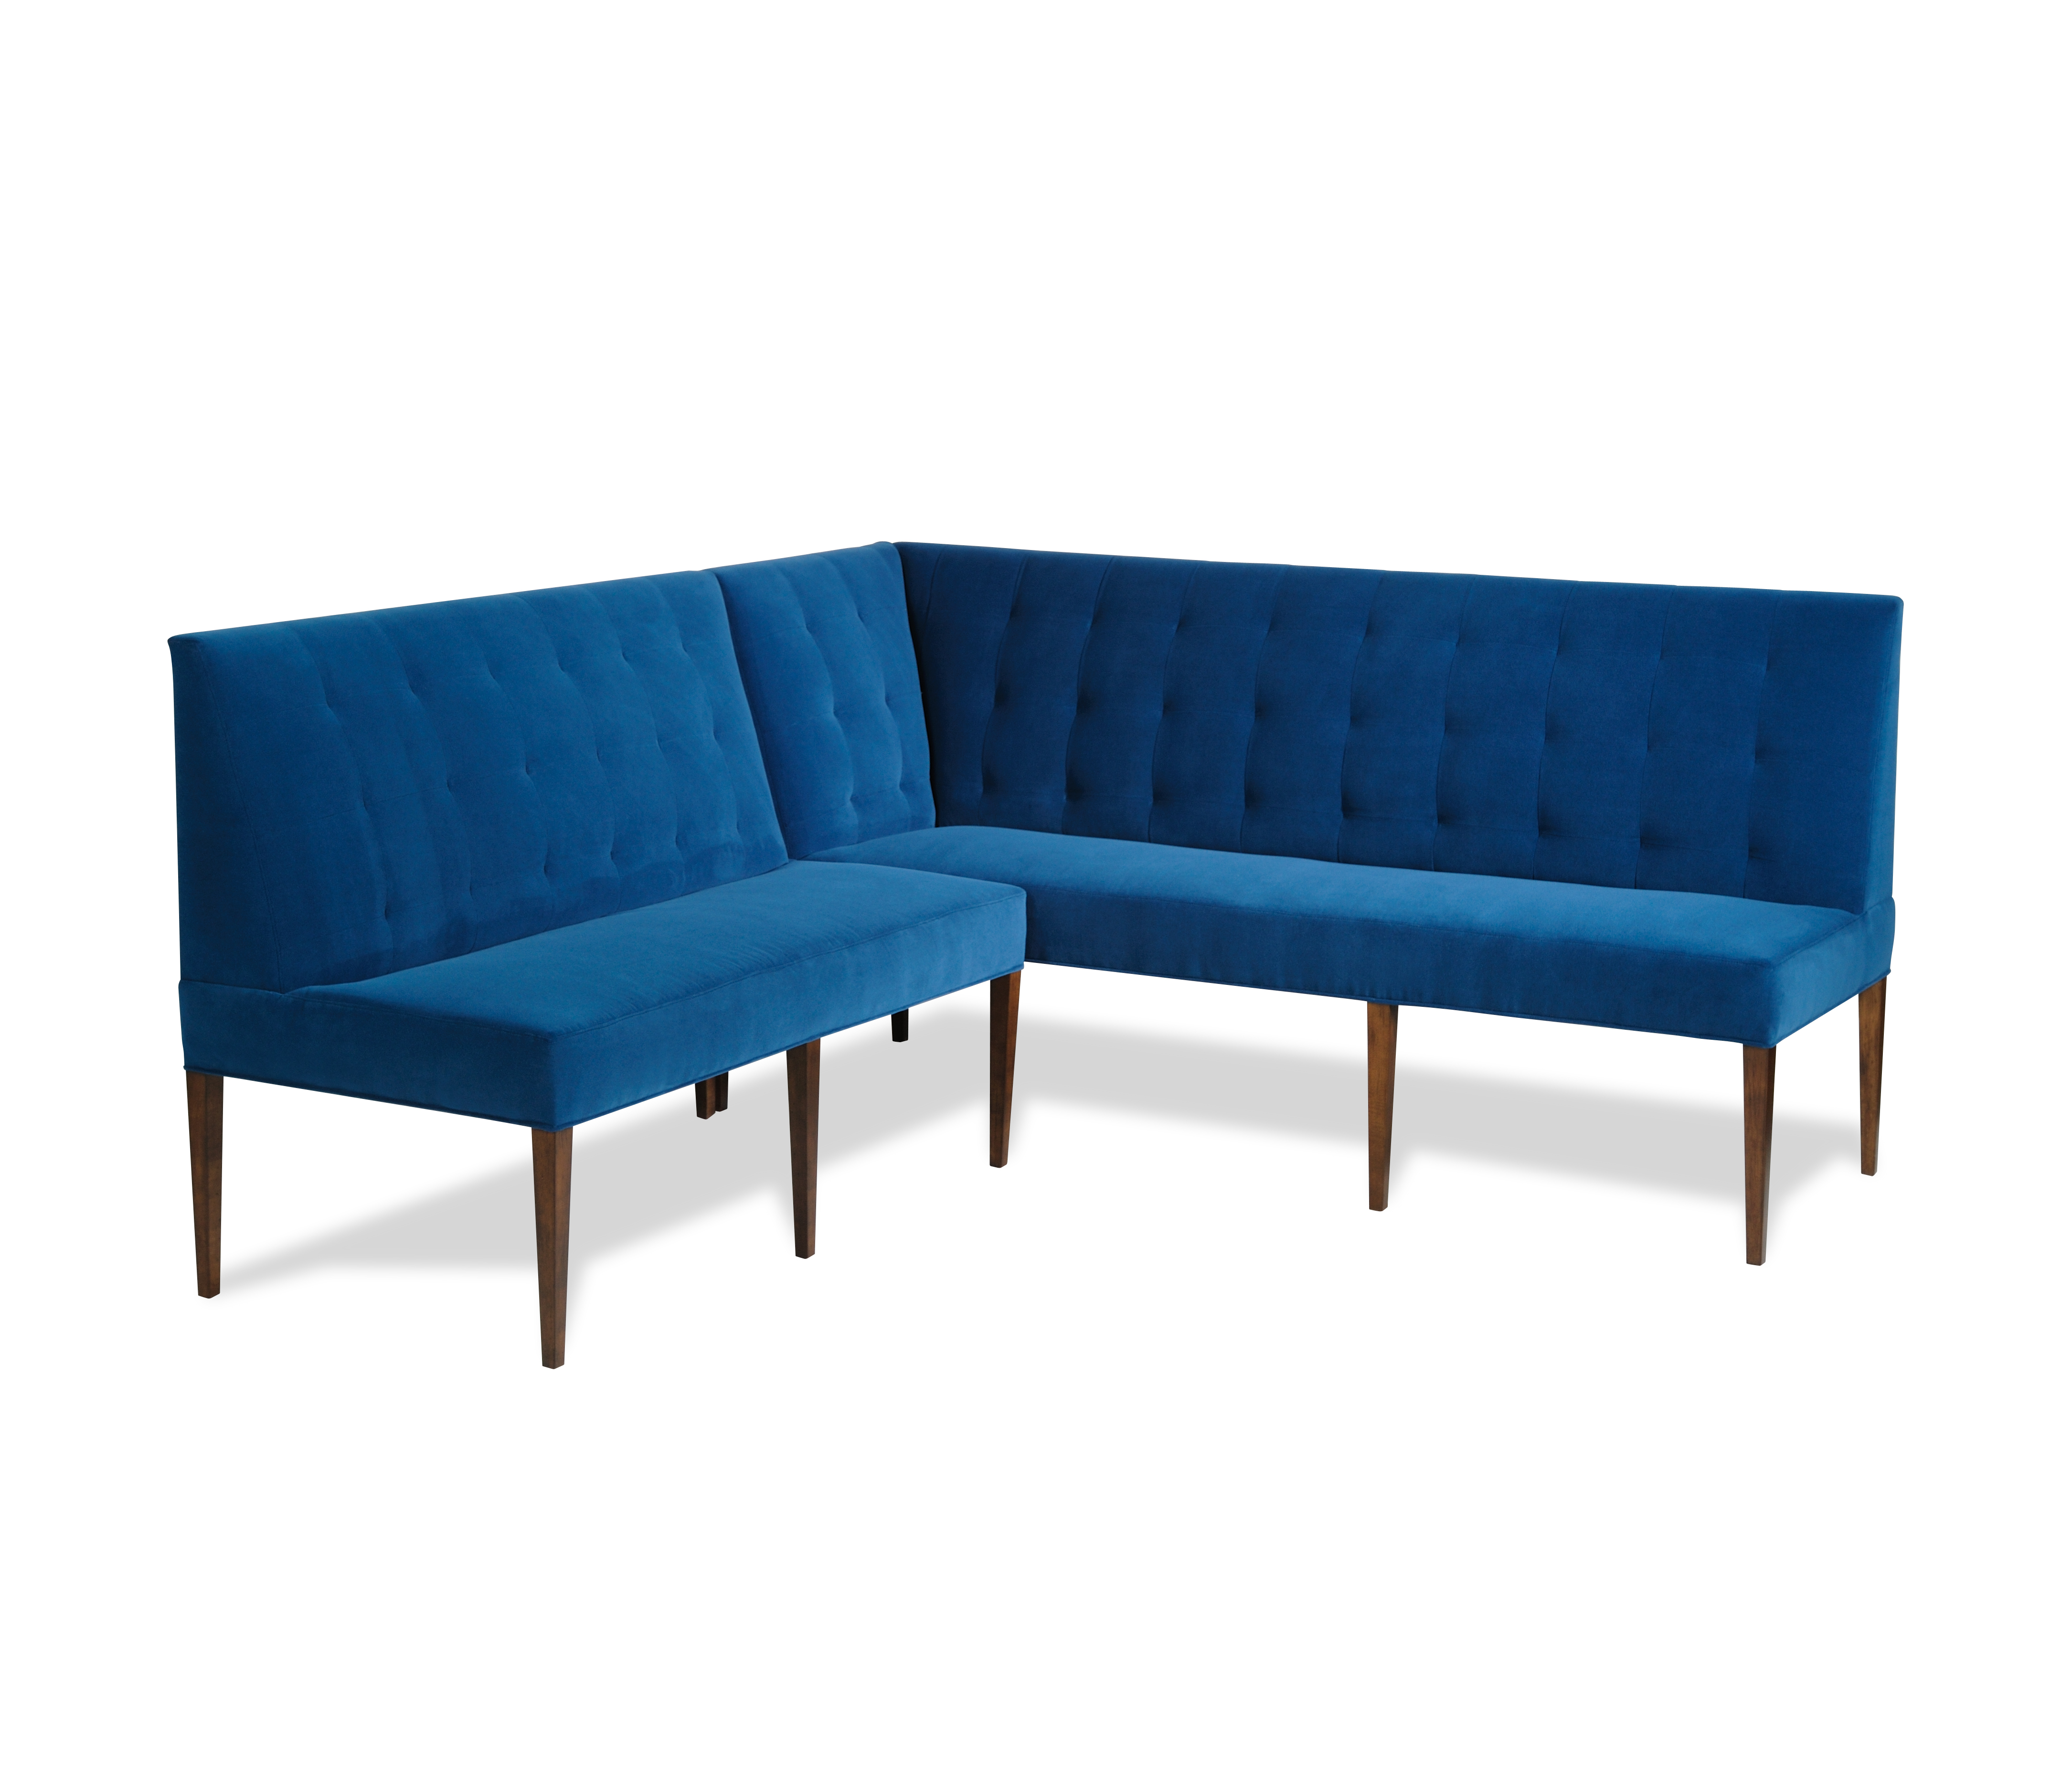 Taylor King Taylor Made dining sectional banquette